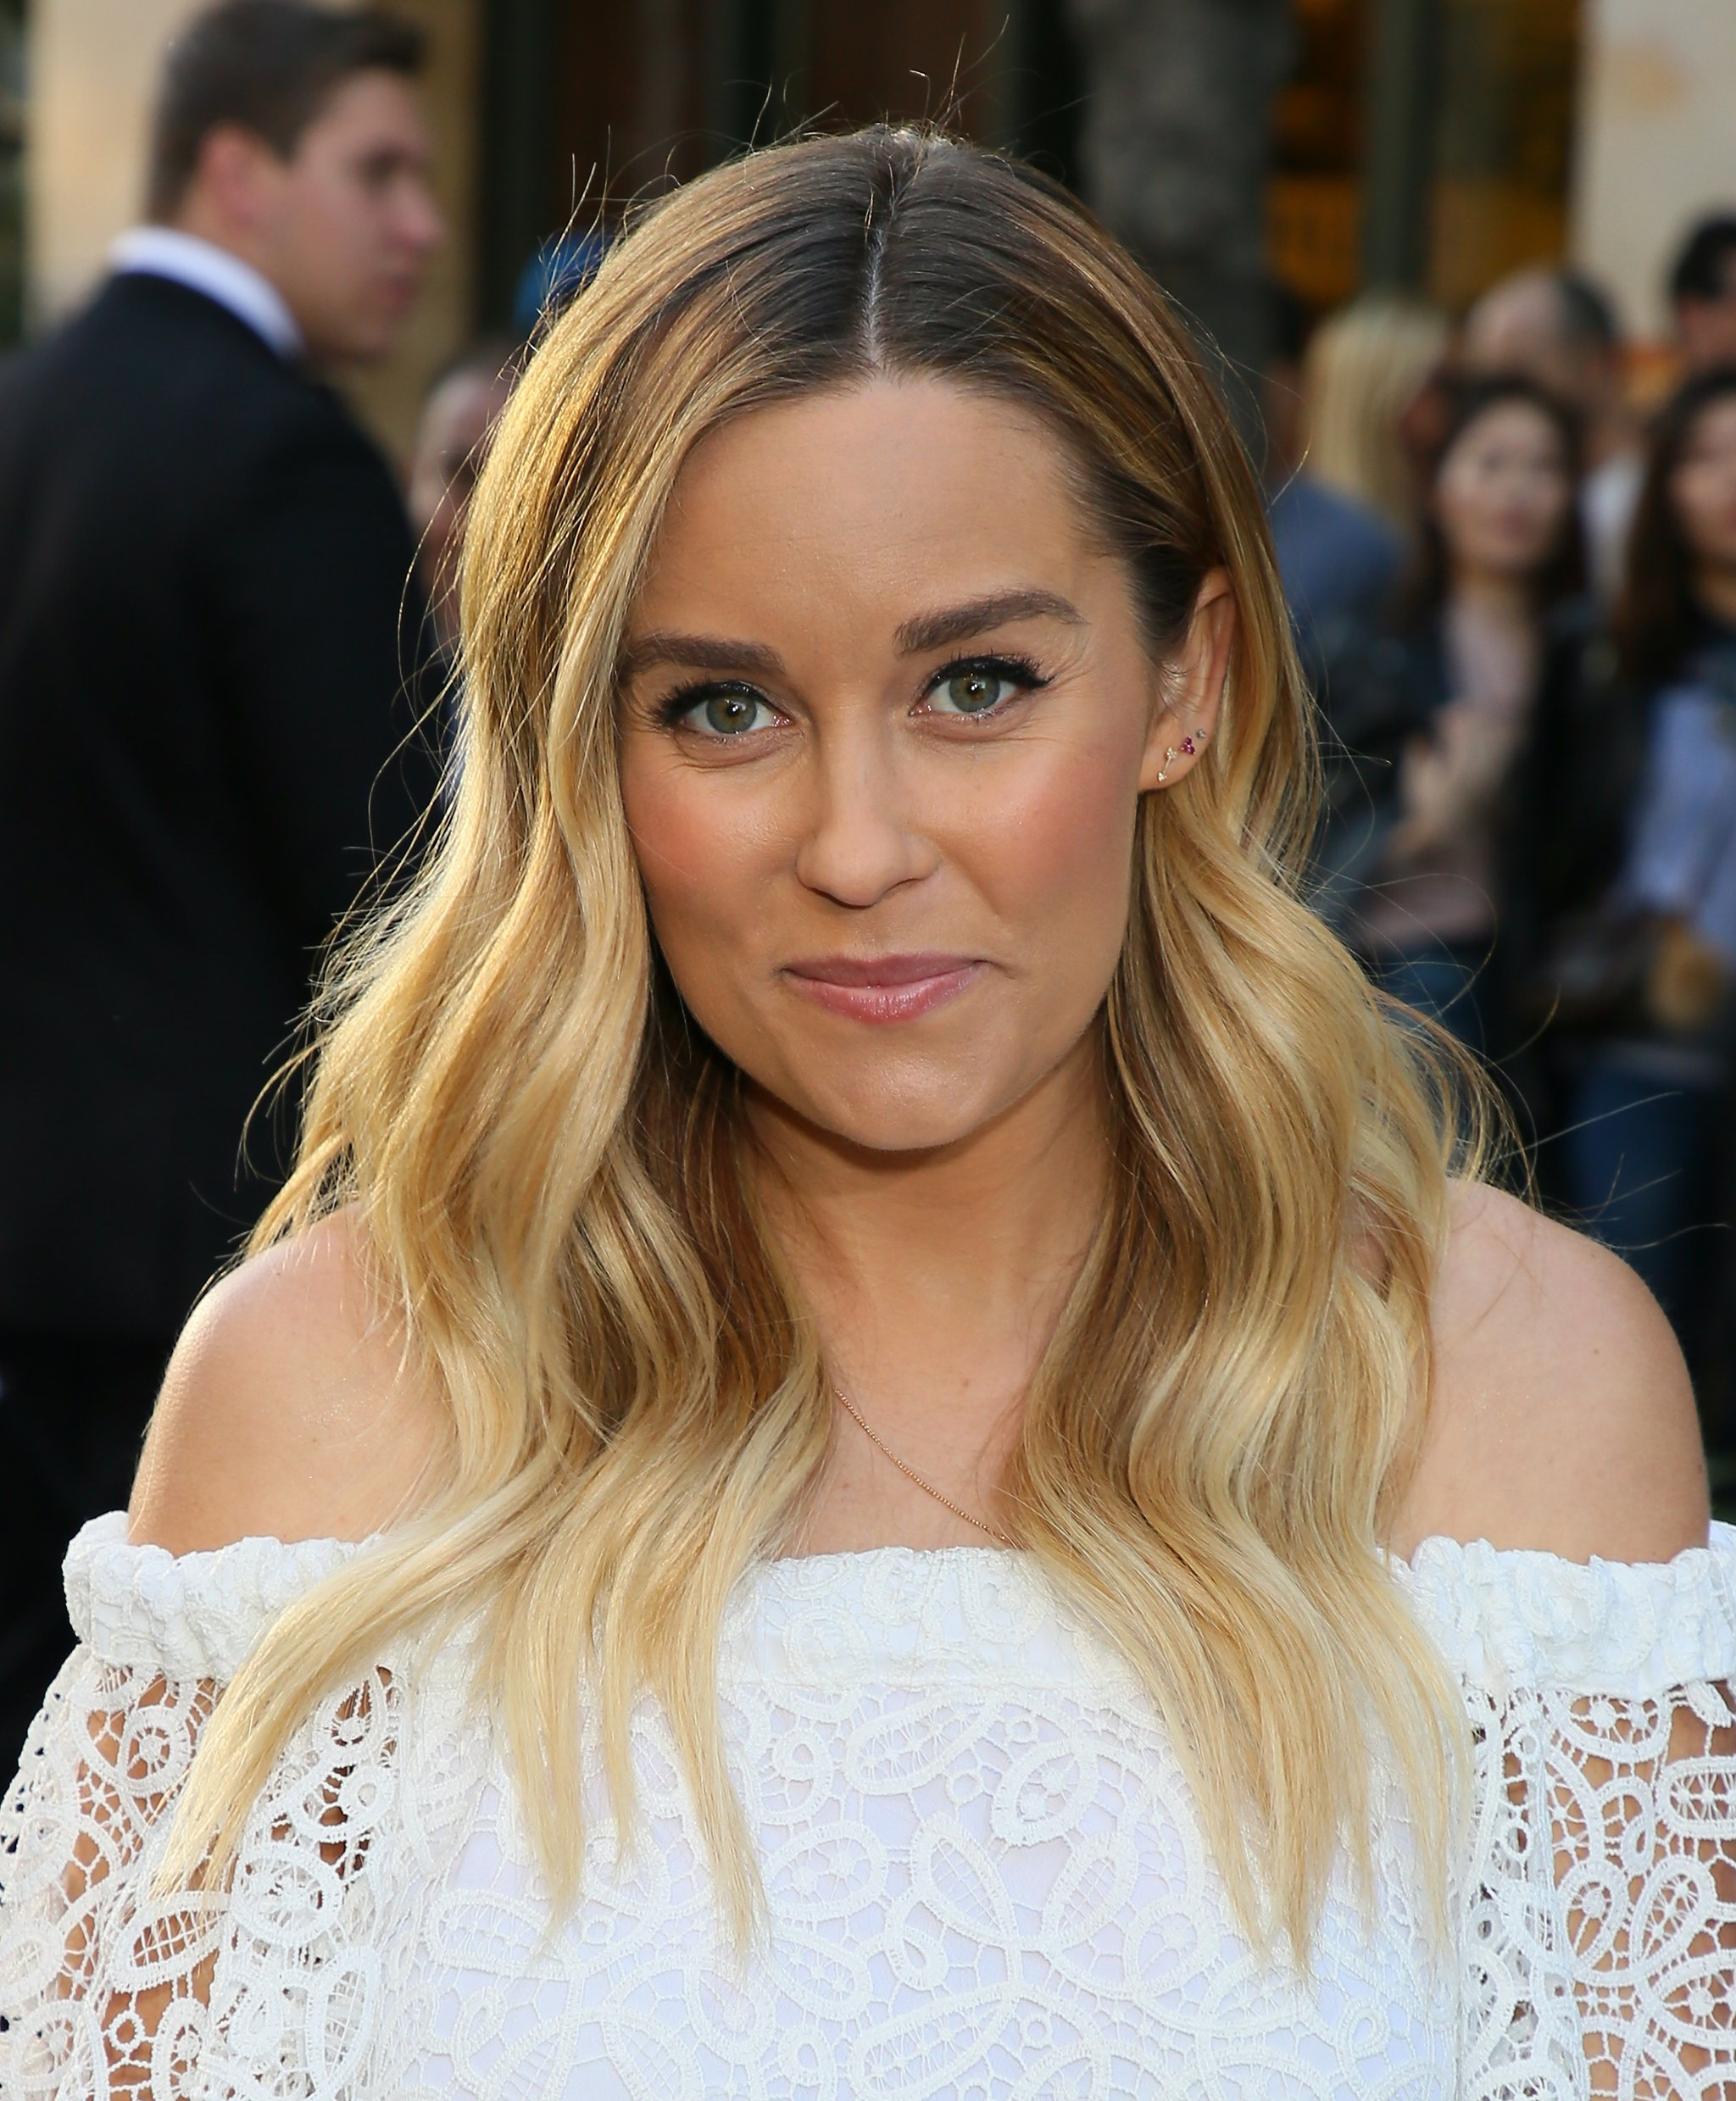 Lauren Conrad Short Bob Hairstyle December 2017 | Popsugar Beauty Throughout Lauren Conrad Short Hairstyles (View 8 of 25)